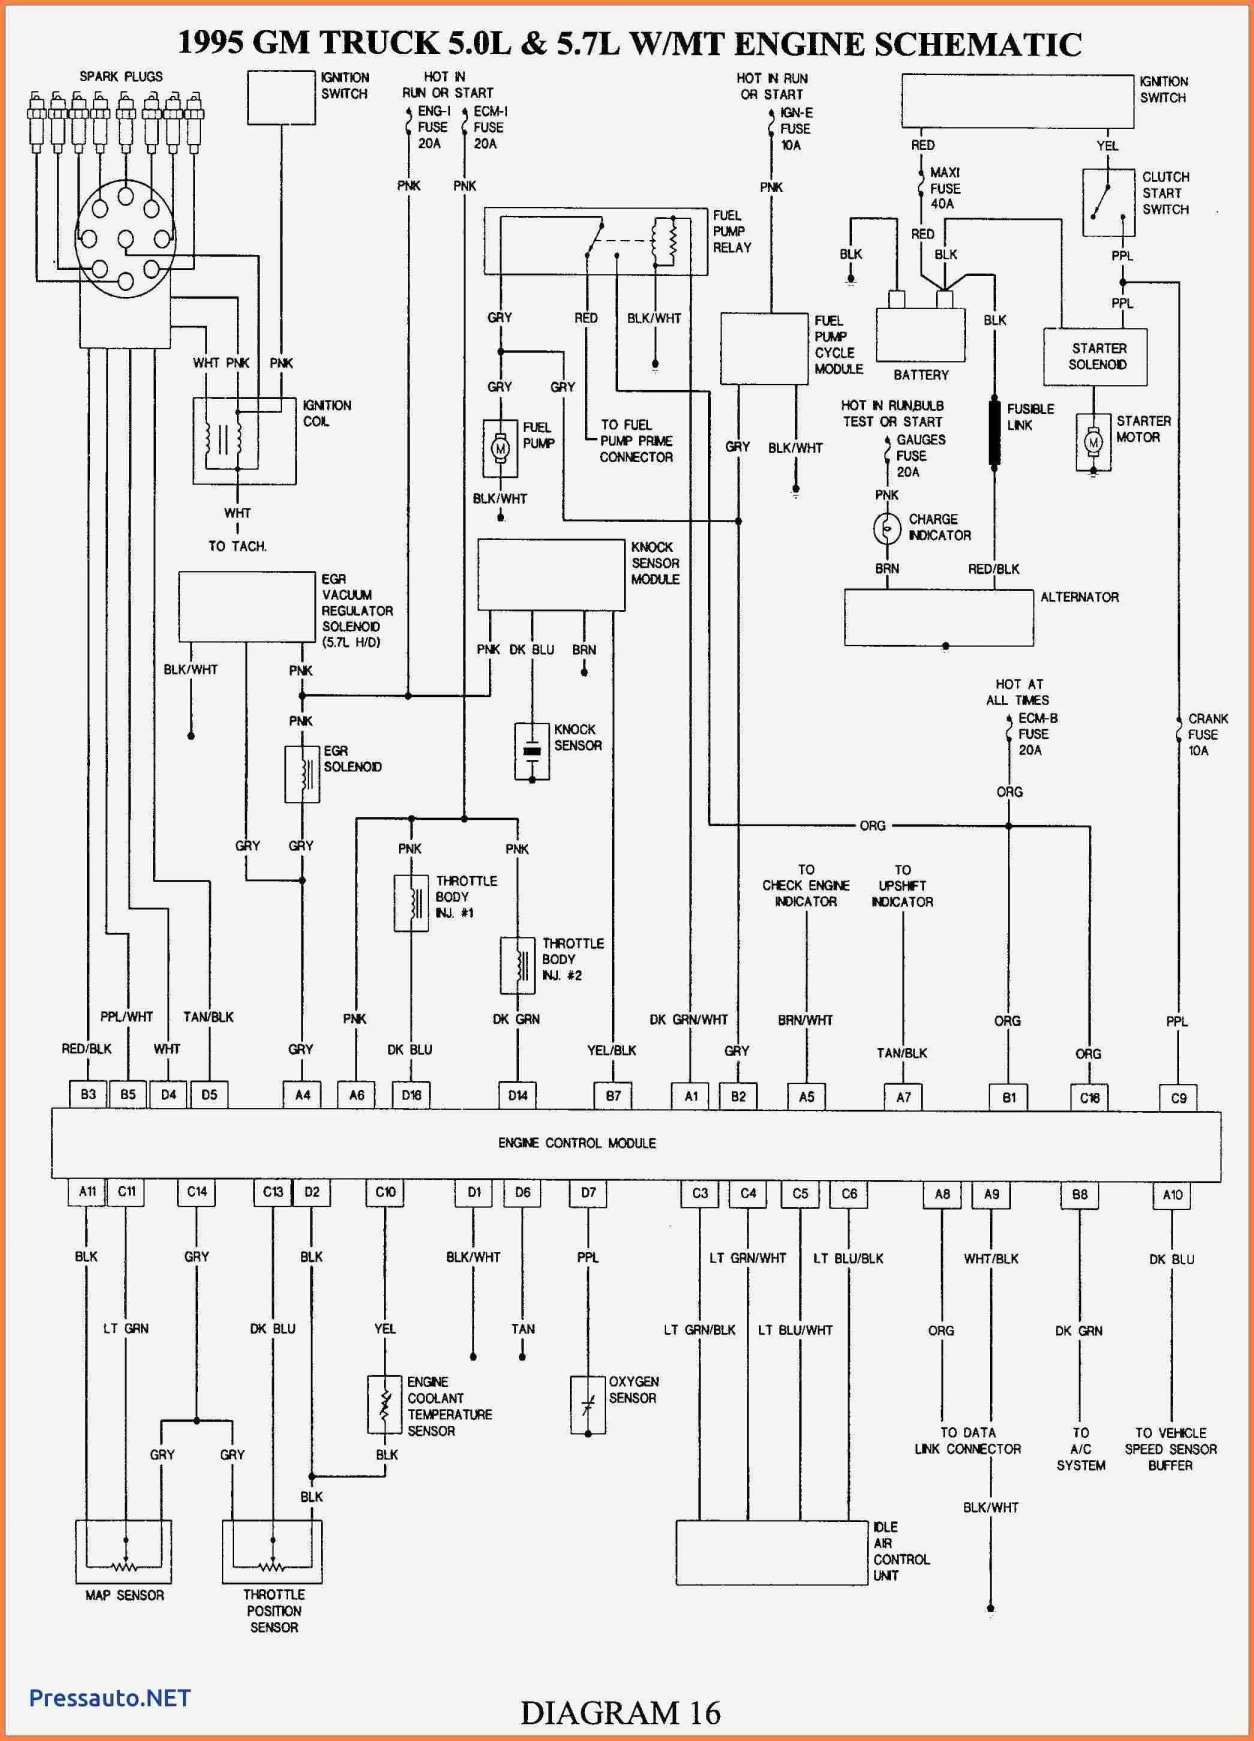 17+ 2002 Chevy Truck Wiring Diagram - Truck Diagram - Wiringg.net in 2020 |  Chevy trucks, Chevy 1500, Electrical diagramPinterest